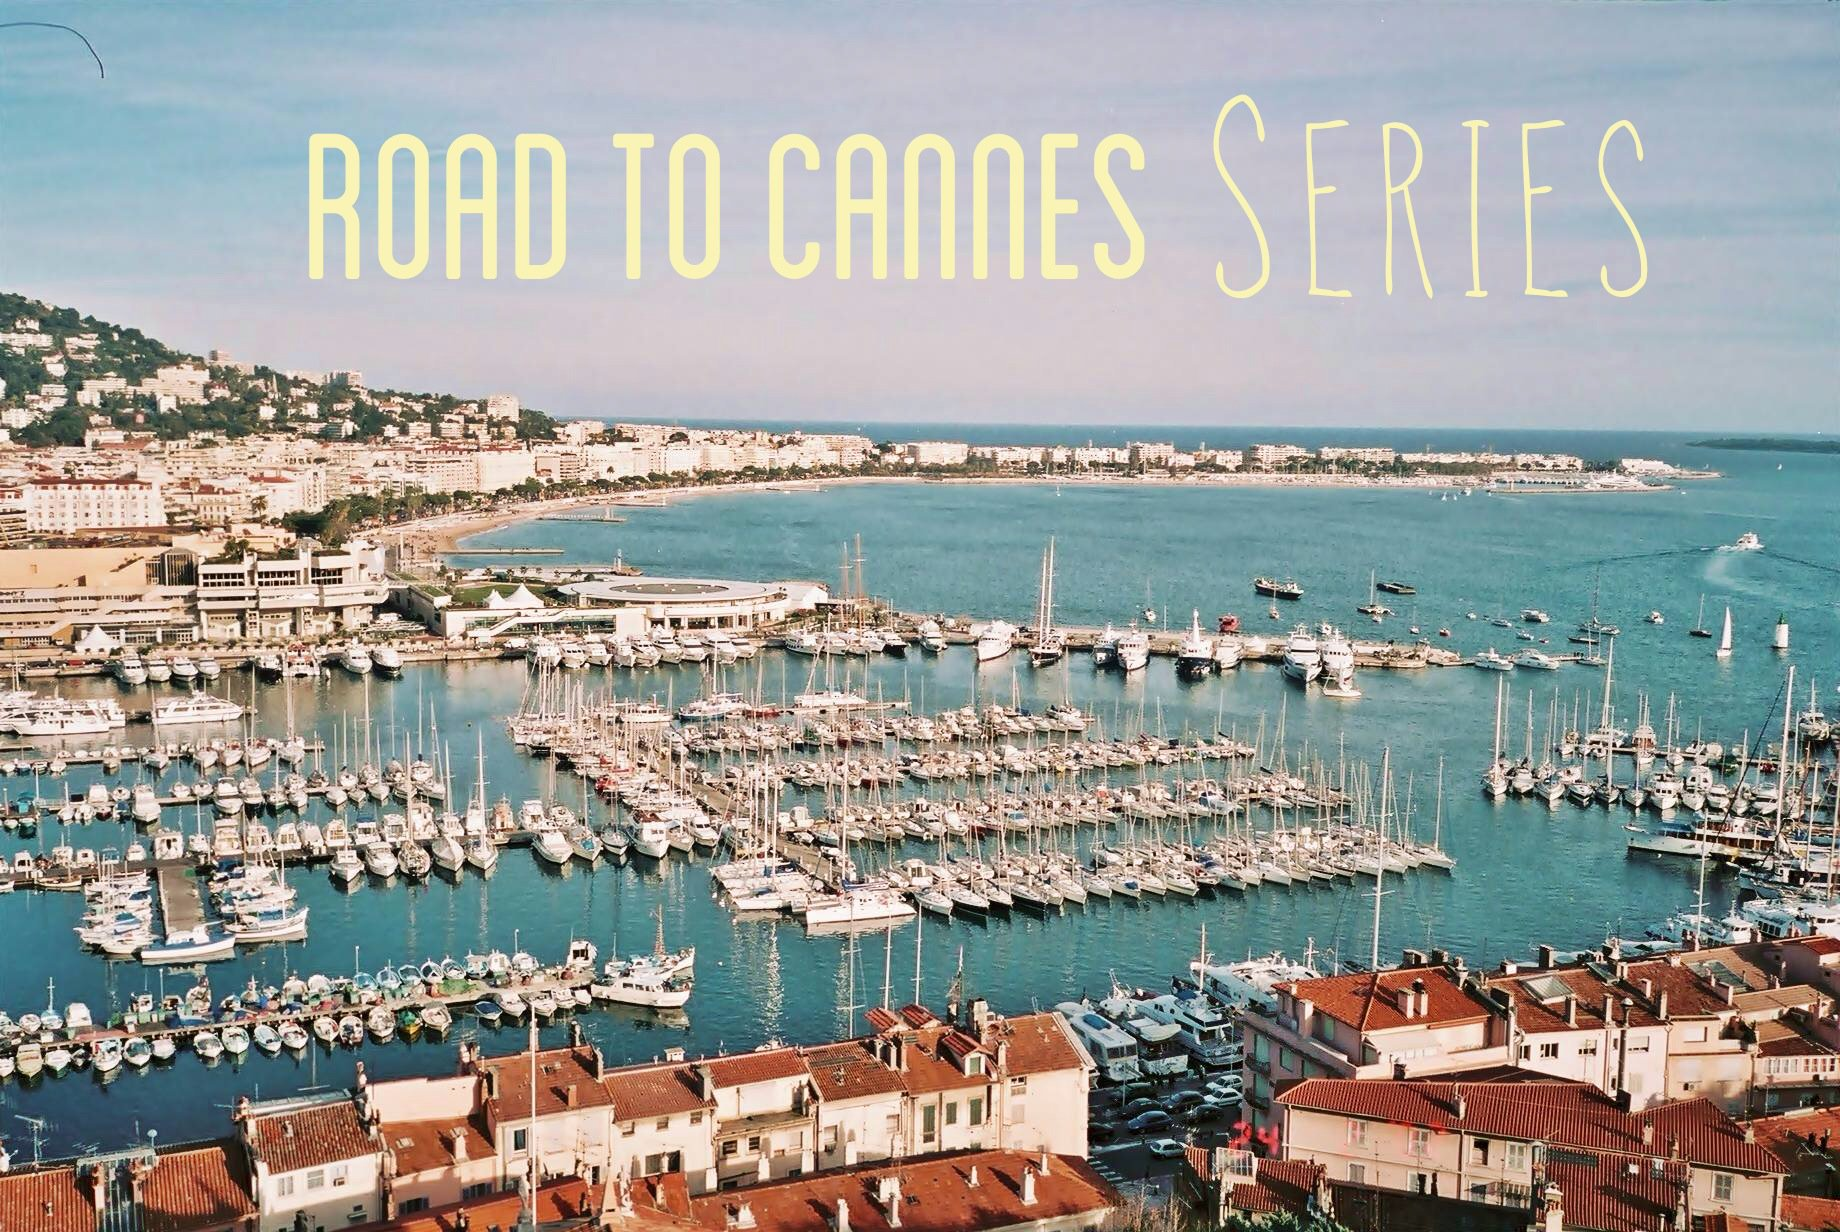 Cannes lanza su festival de series de televisión #CannesSeries https://t.co/ZsBxQ0MvZY https://t.co/I5cibDgv7Z